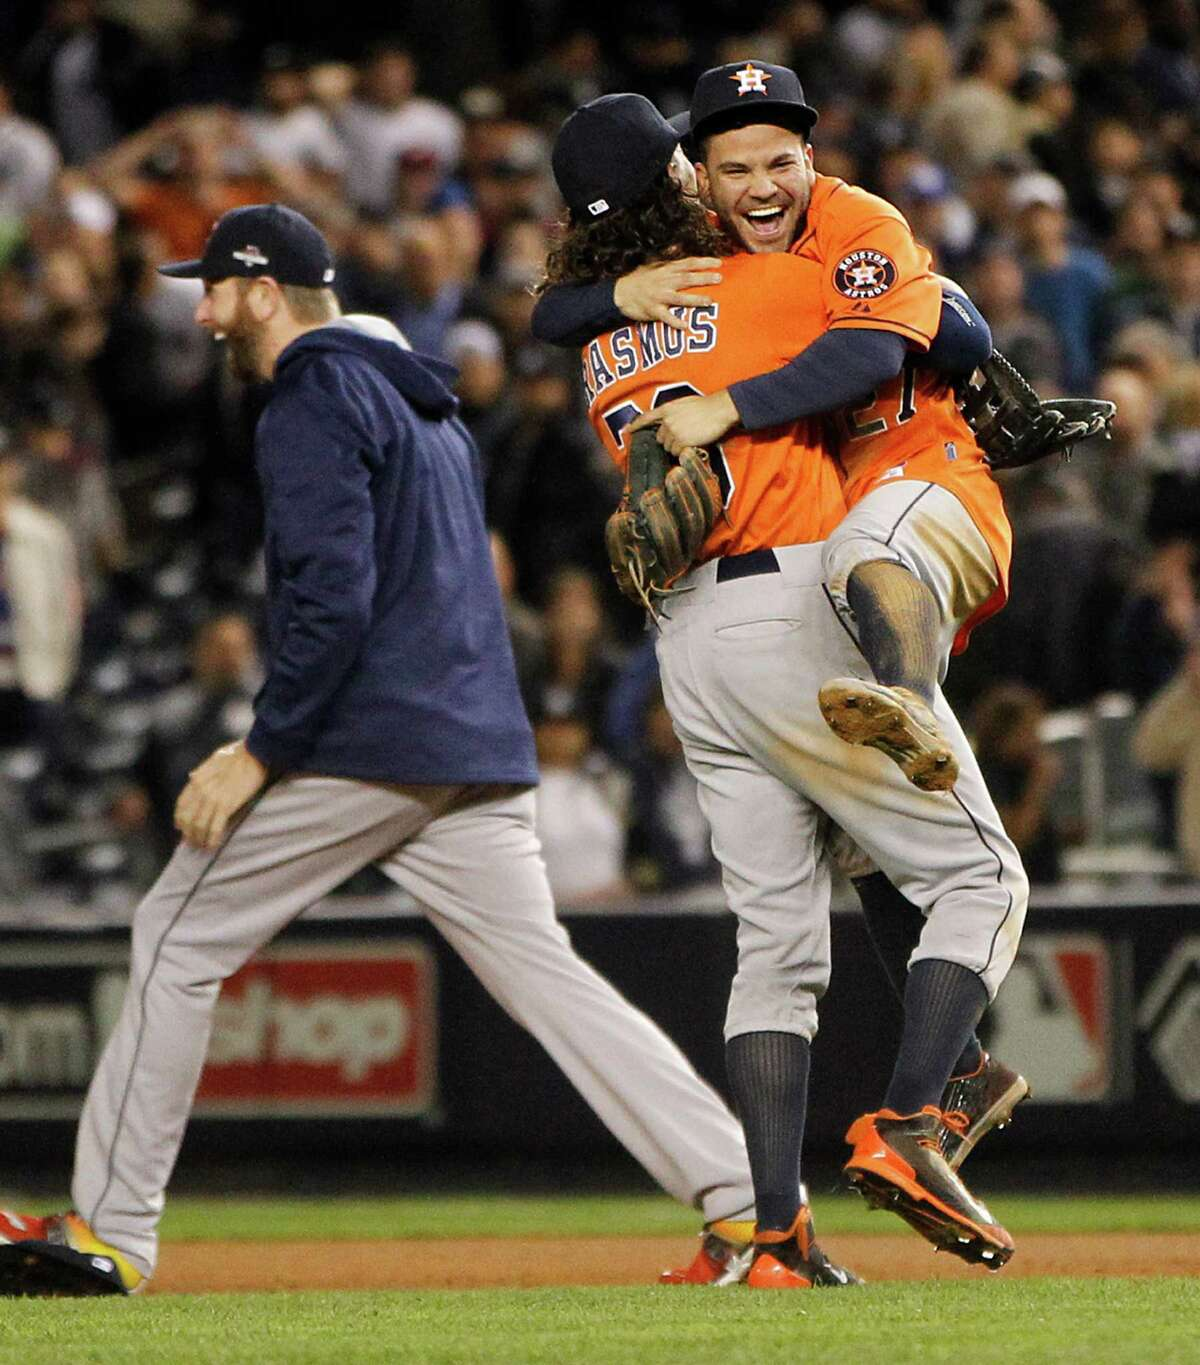 Houston Astros second baseman Jose Altuve (27) and Houston Astros left fielder Colby Rasmus (28) celebrate the Astros 3-0 win over the New York Yankees in the American League Wild Card game at Yankee Stadium on Tuesday, Oct. 6, 2015, in New York. ( Karen Warren / Houston Chronicle )